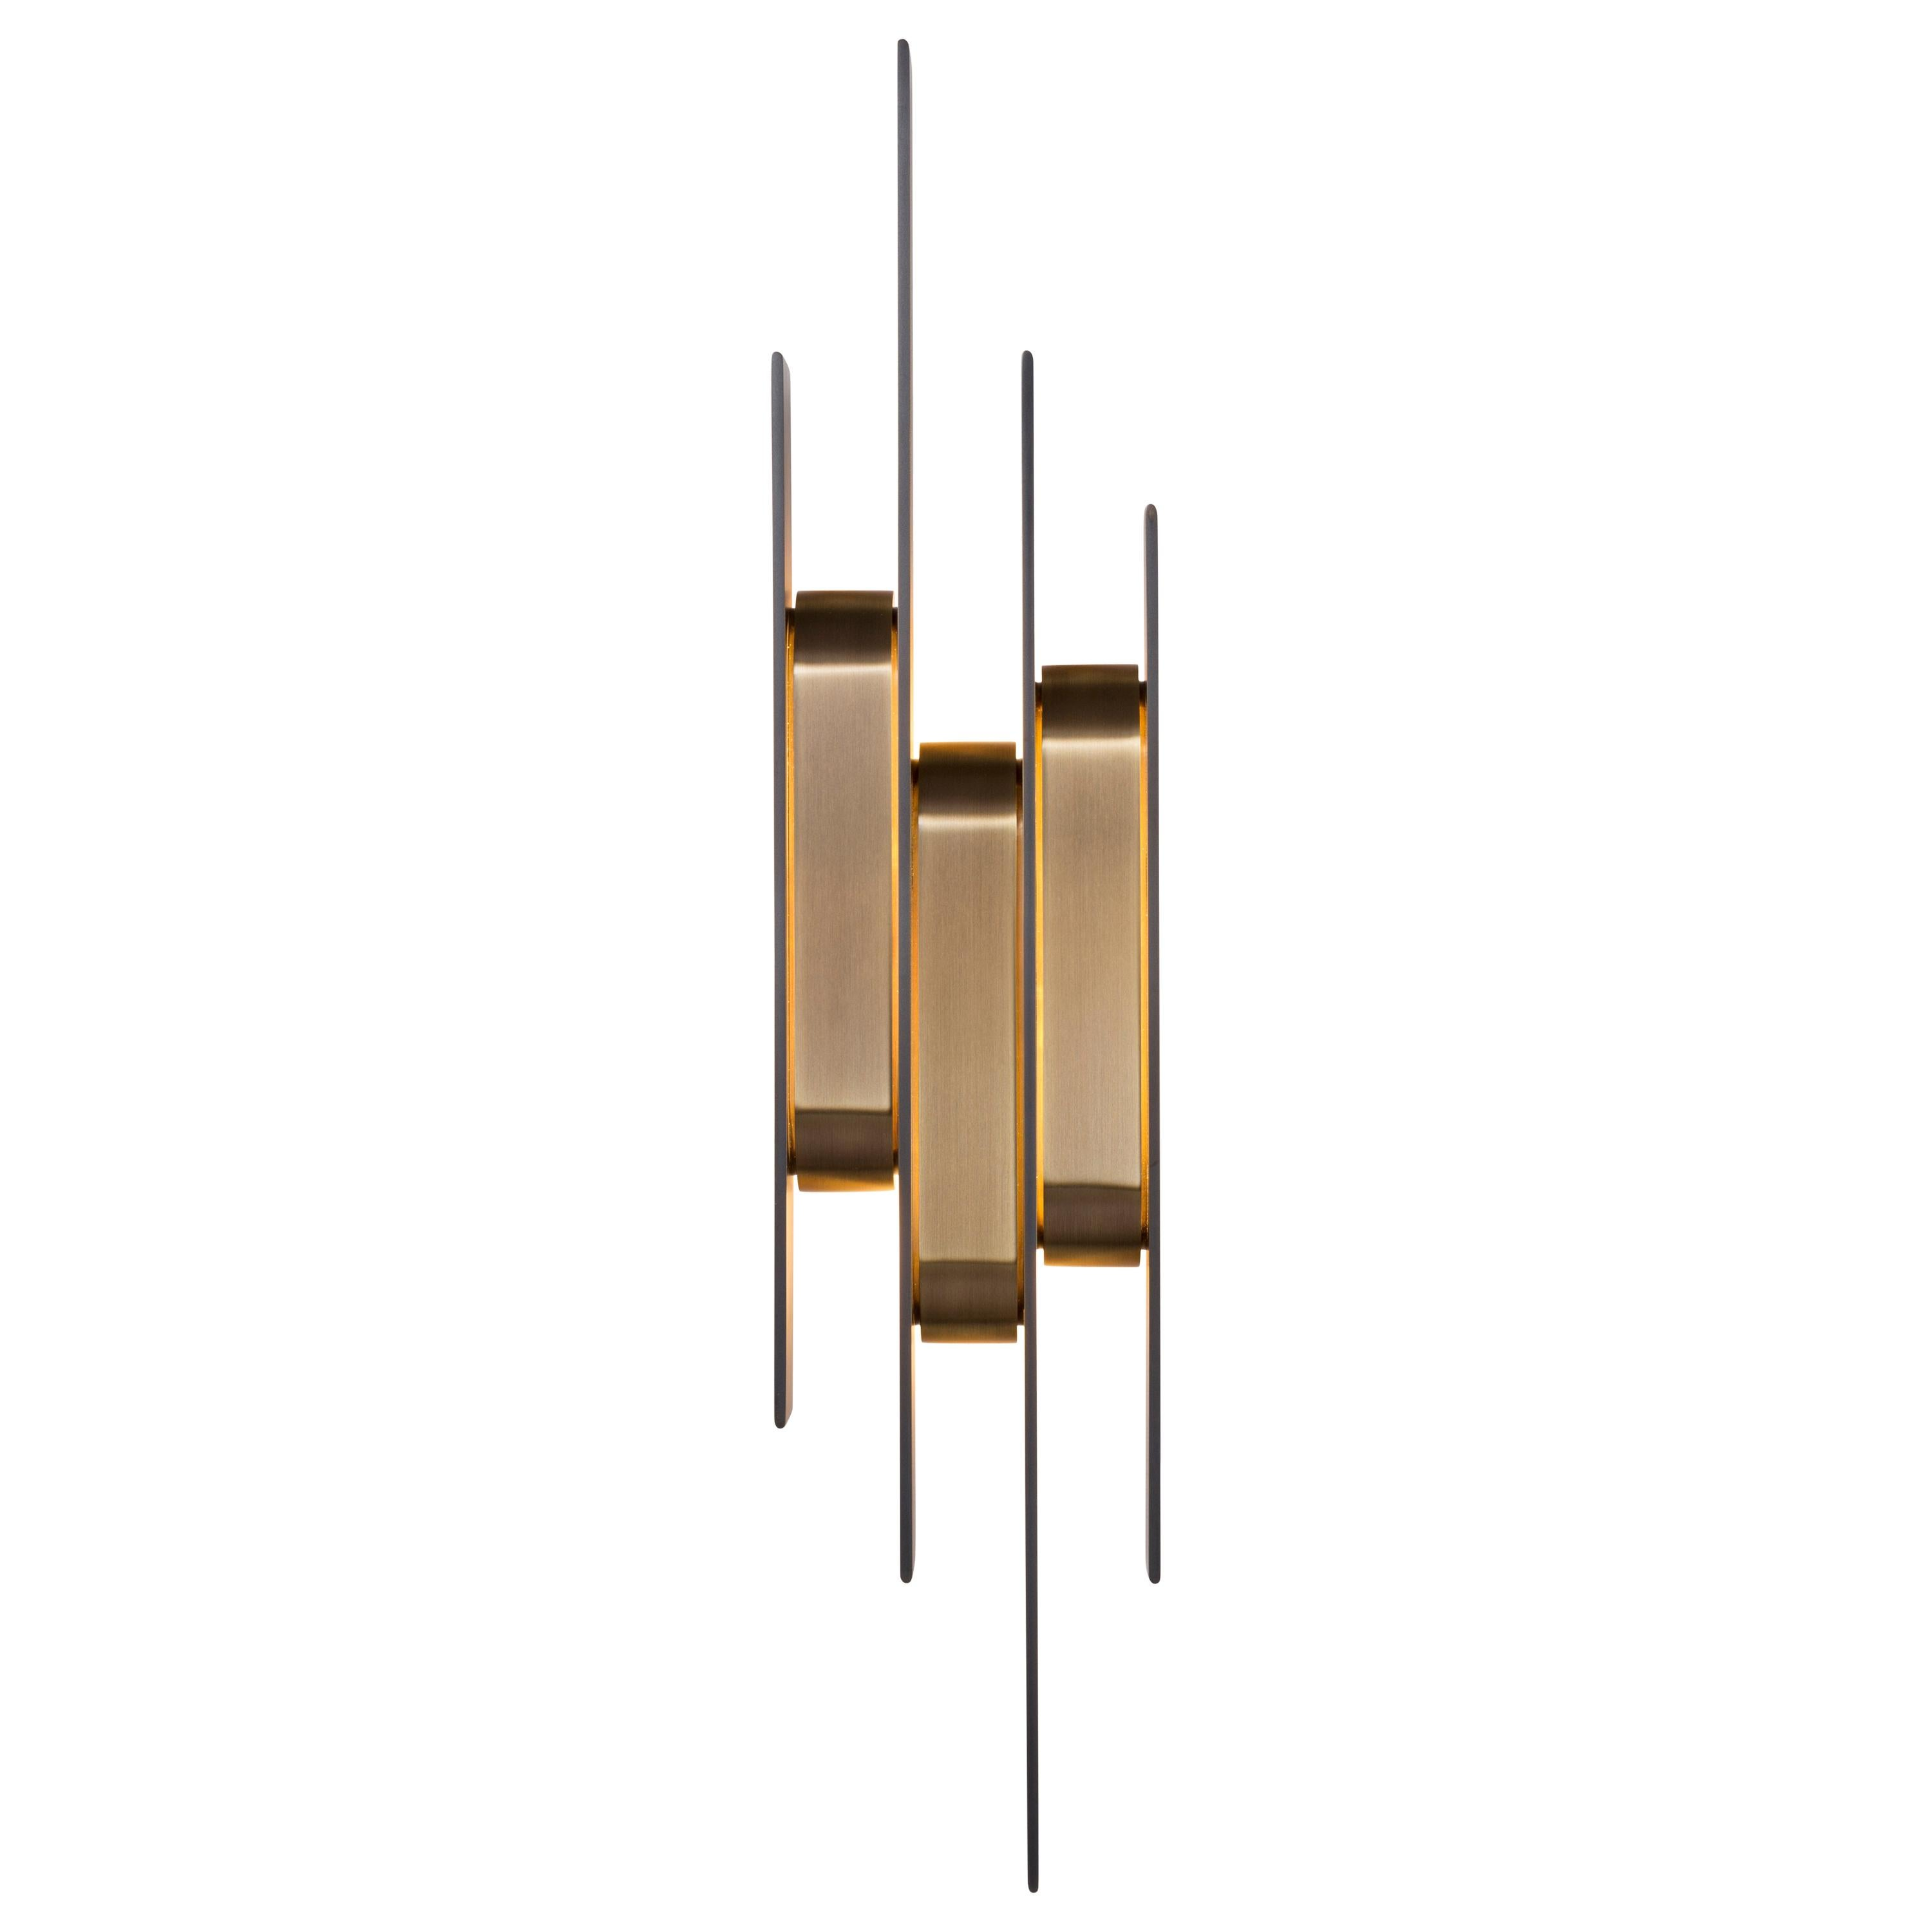 HOLLY HUNT Meridian Sconce in Metal Golden Bronze Patina Finish